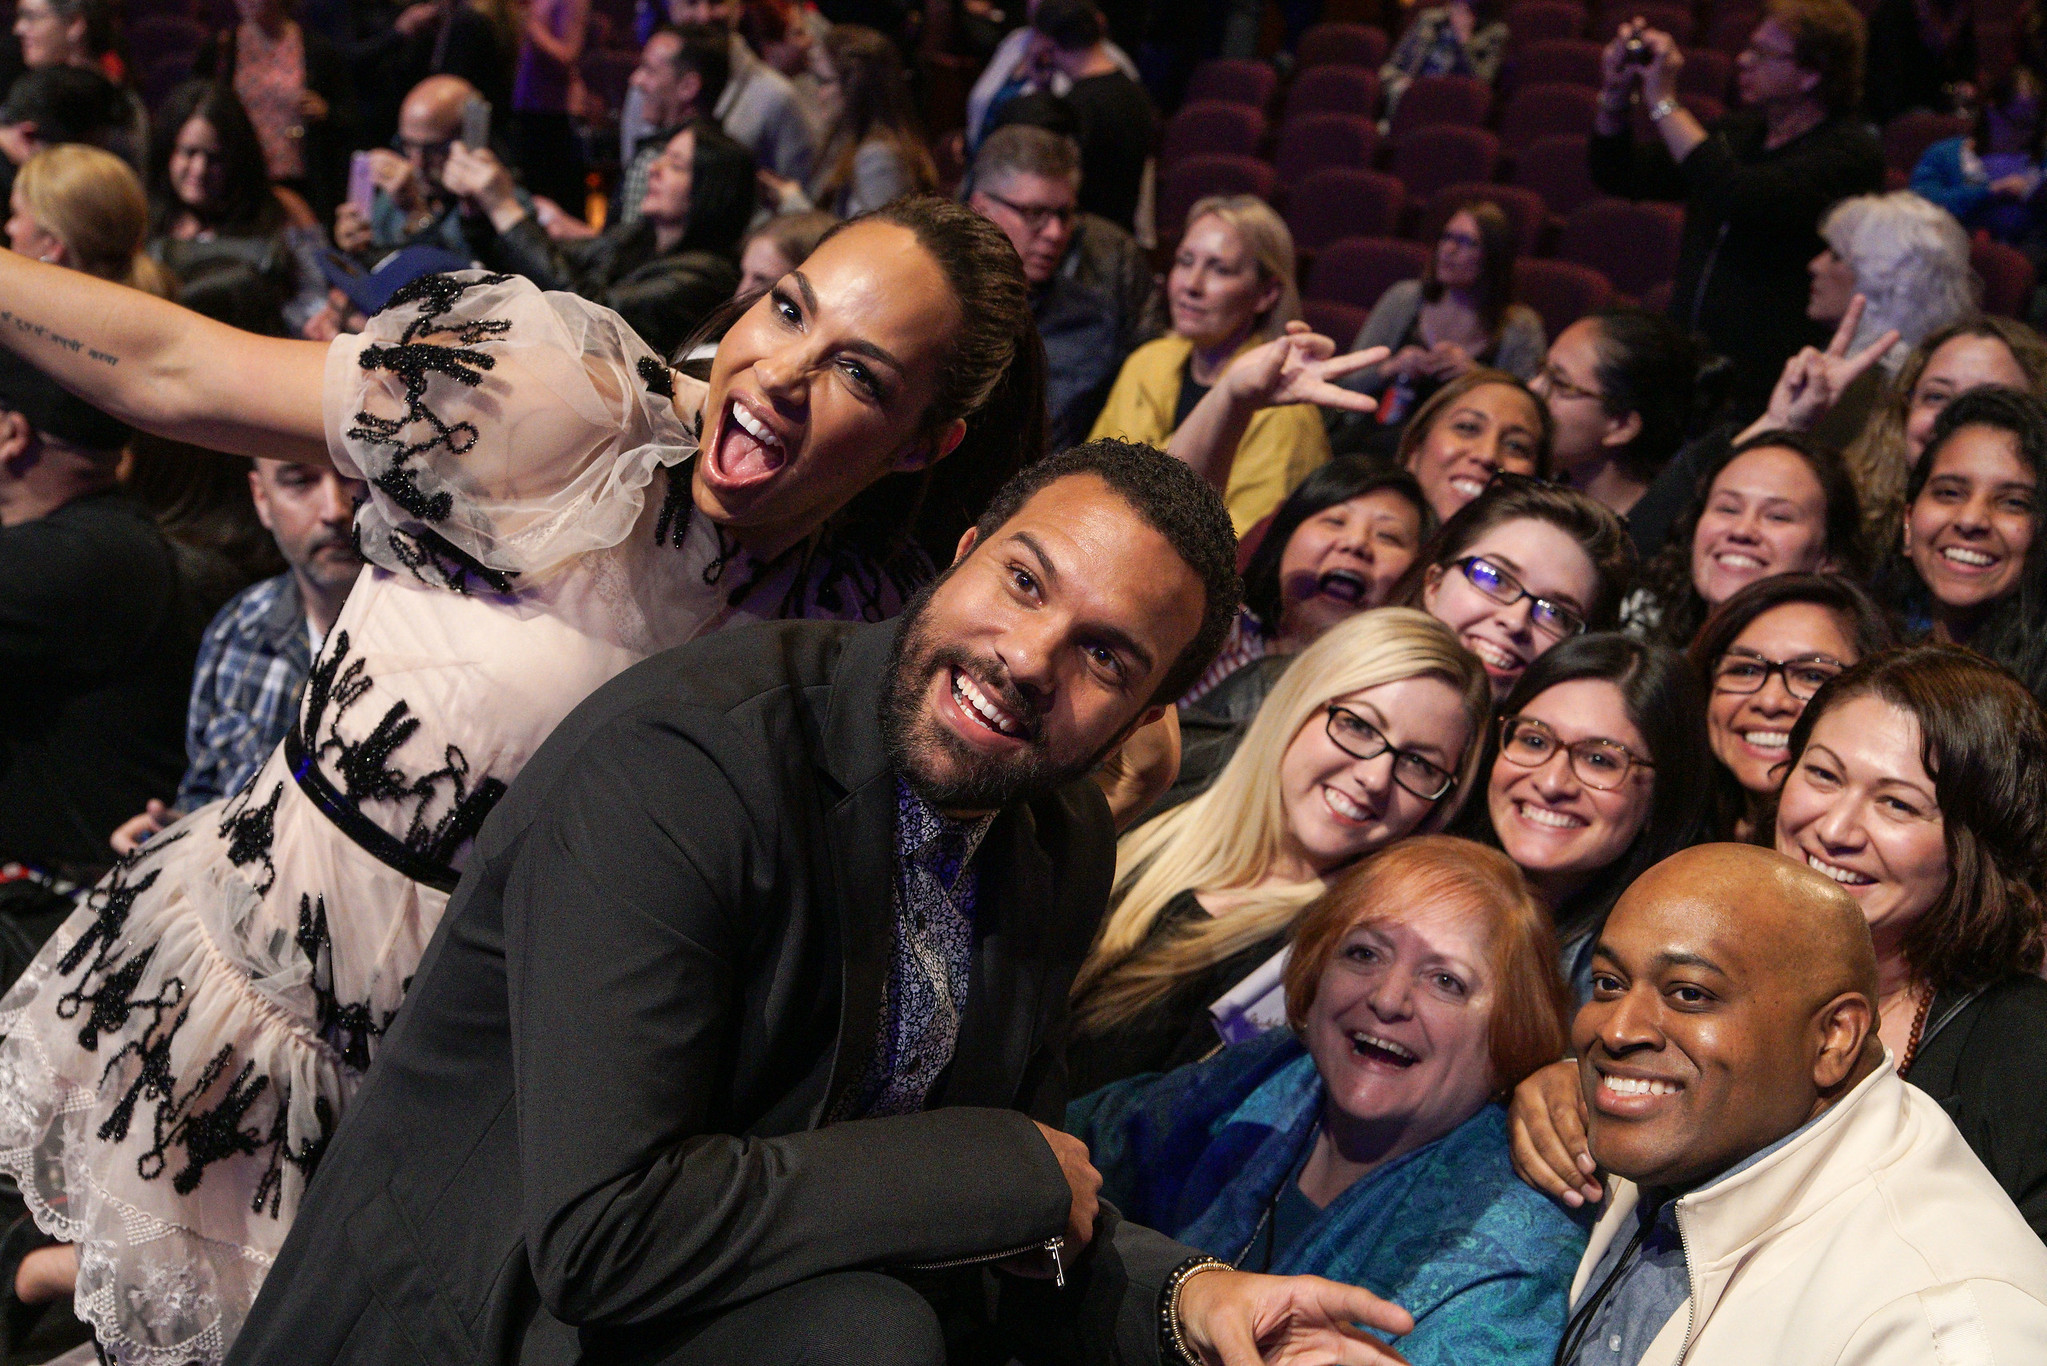 Amanda Brugel and O-T Fagbenle attend PaleyFest LA 2018 honoring The Handmaid's Tale, presented by The Paley Center for Media, at the DOLBY THEATRE on March 18, 2018 in Hollywood, California. Photo Credit:Emily Kneeter for the Paley Center